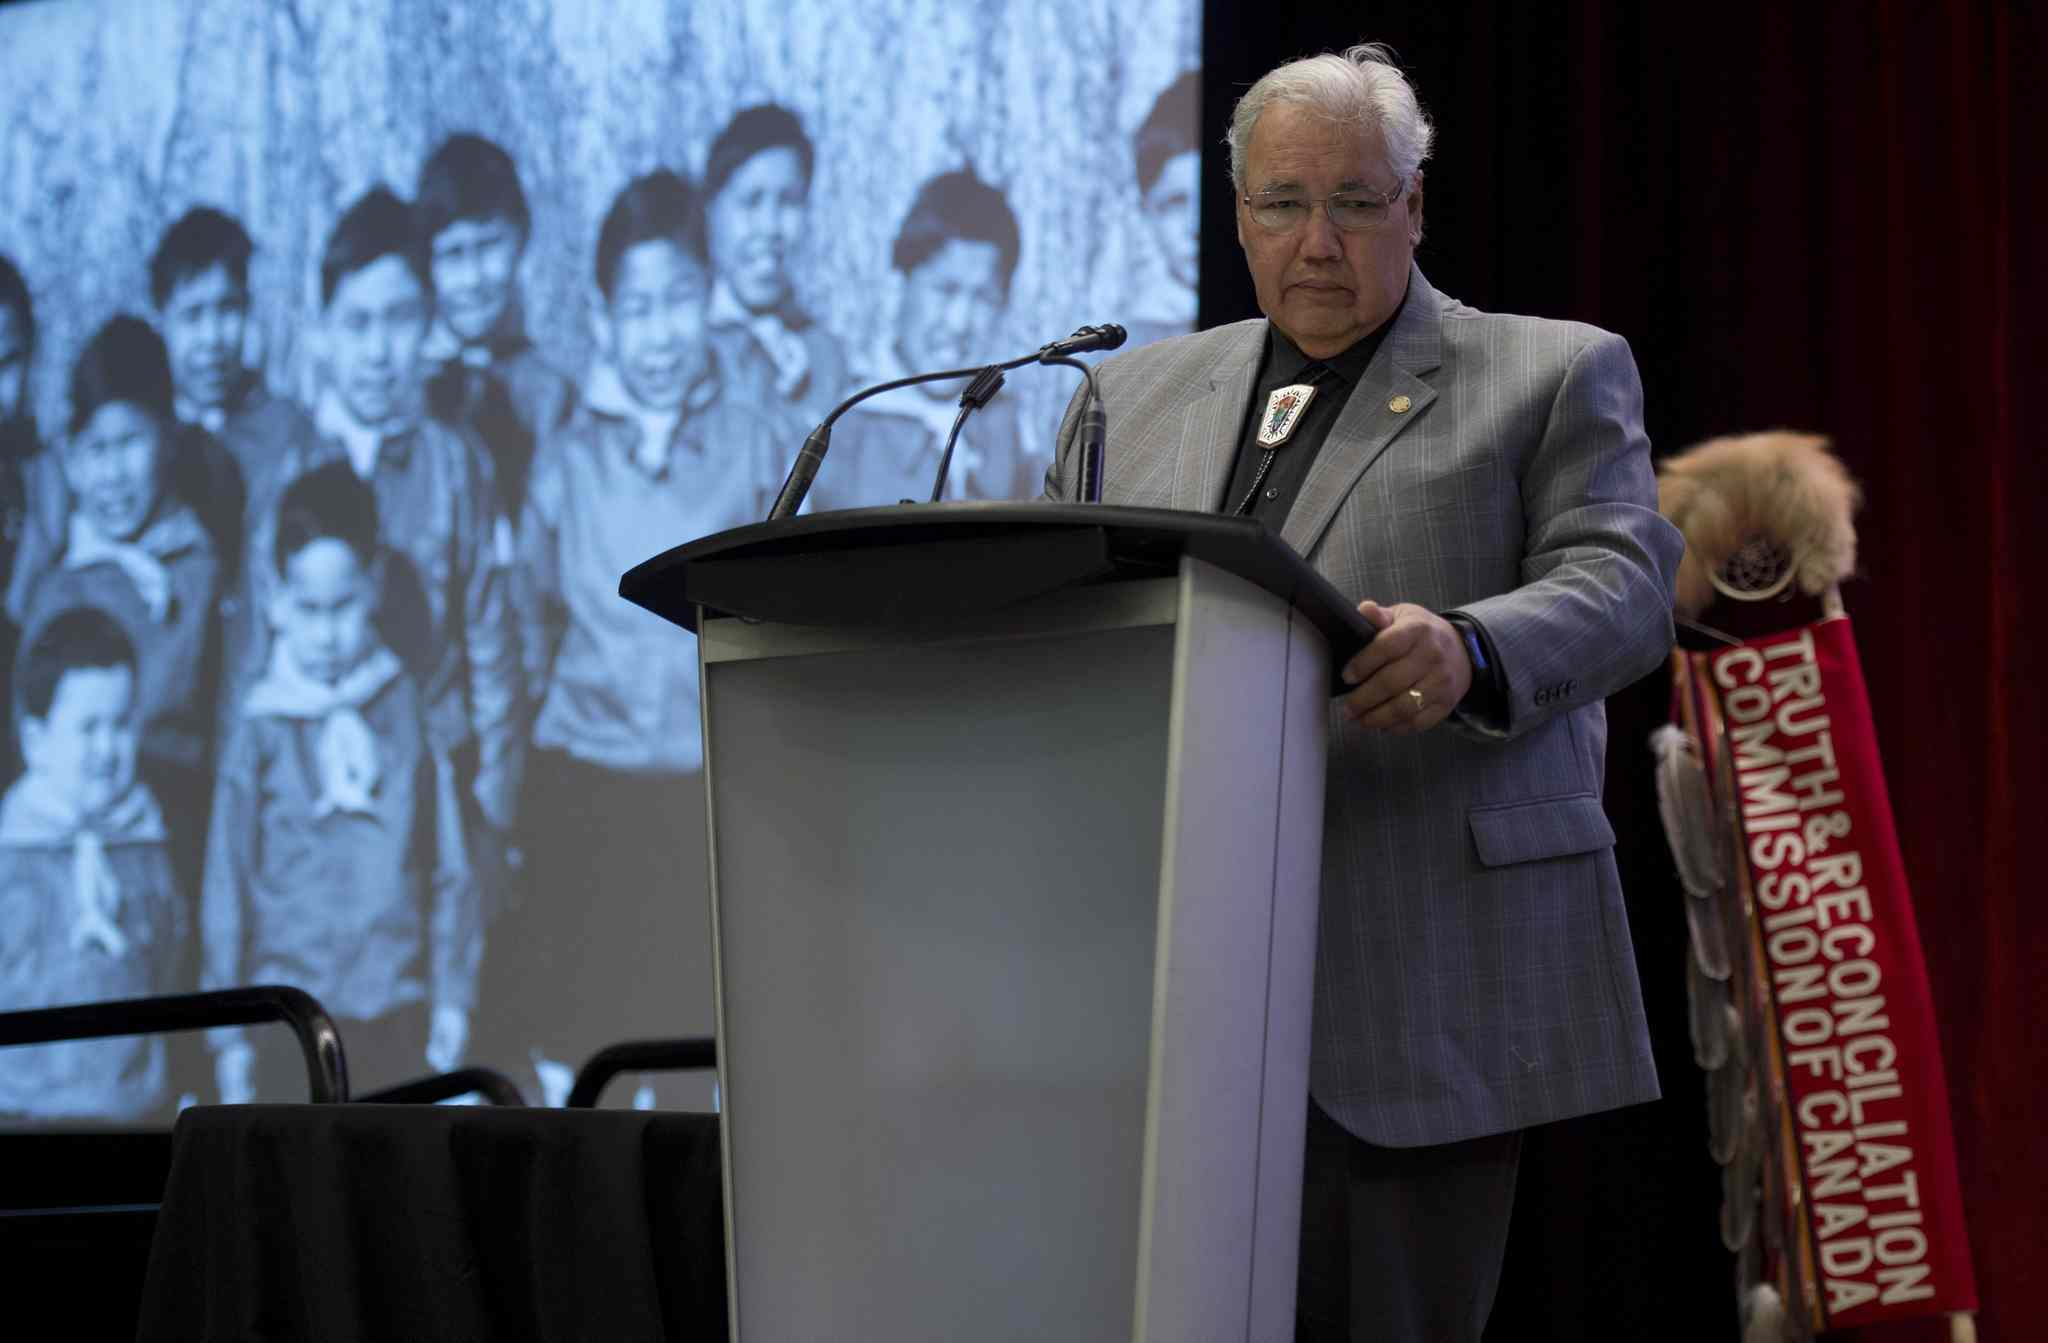 Commission chairman Justice Murray Sinclair speaks at the Truth and Reconciliation Commission  in Ottawa Tuesday.